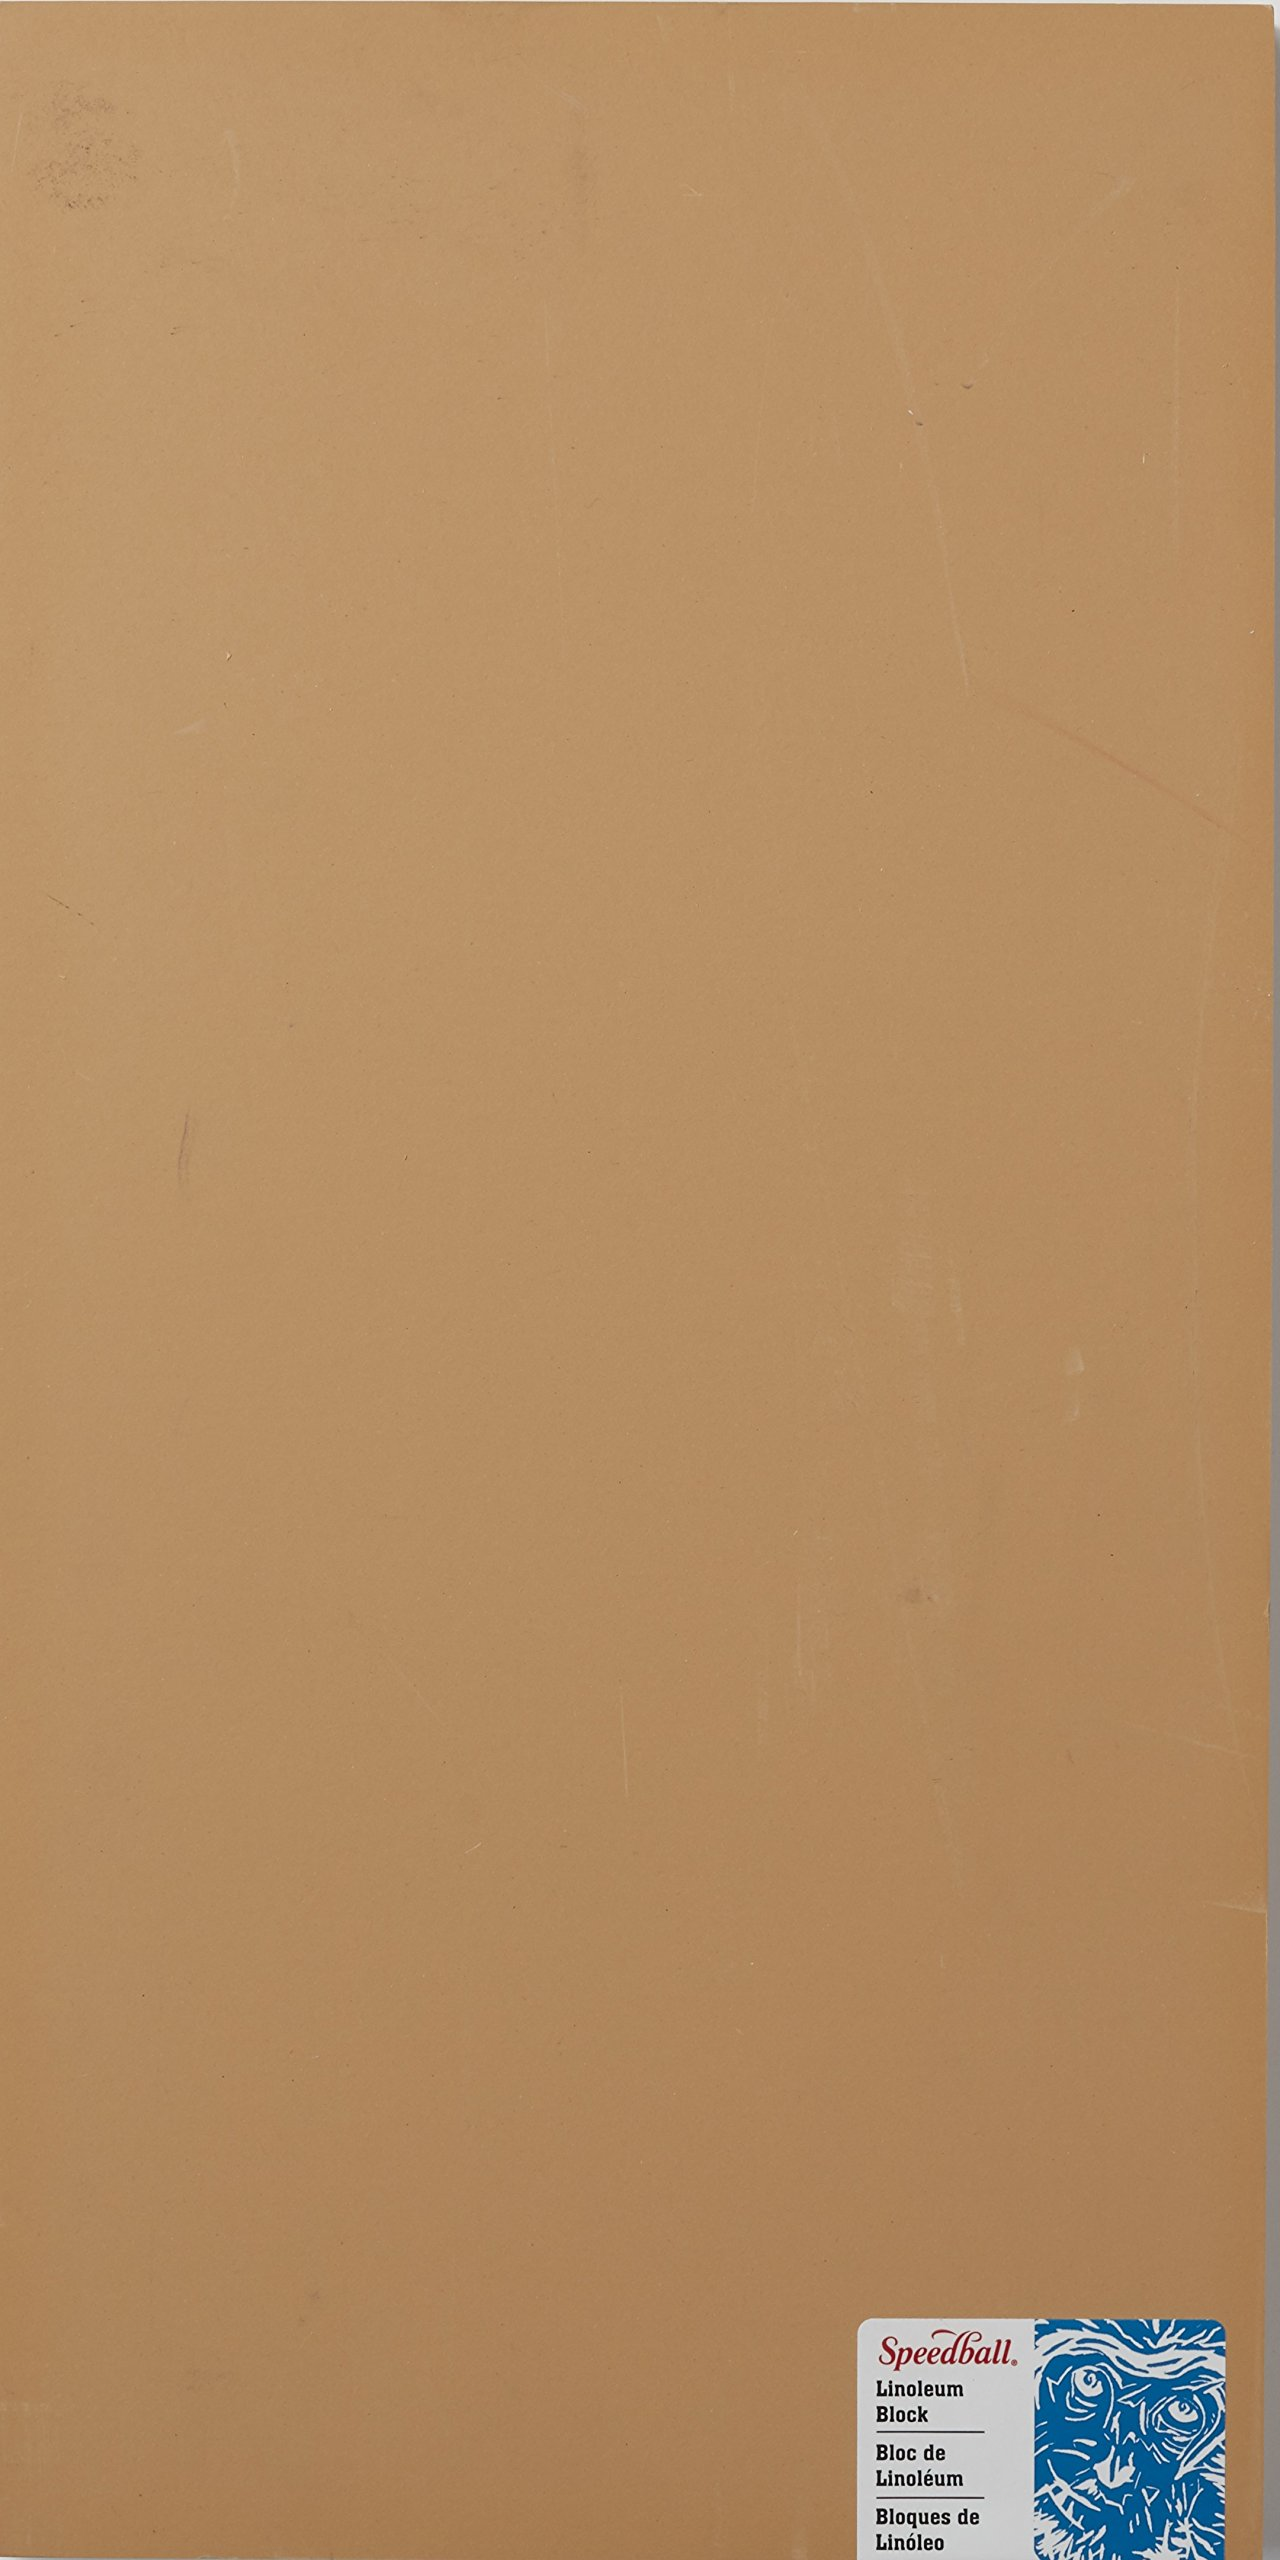 Speedball 4316 Premium Mounted Linoleum Block - Fine, Flat Surface for Easy Carving, Smoky Tan, 10 x 20 Inches by Speedball